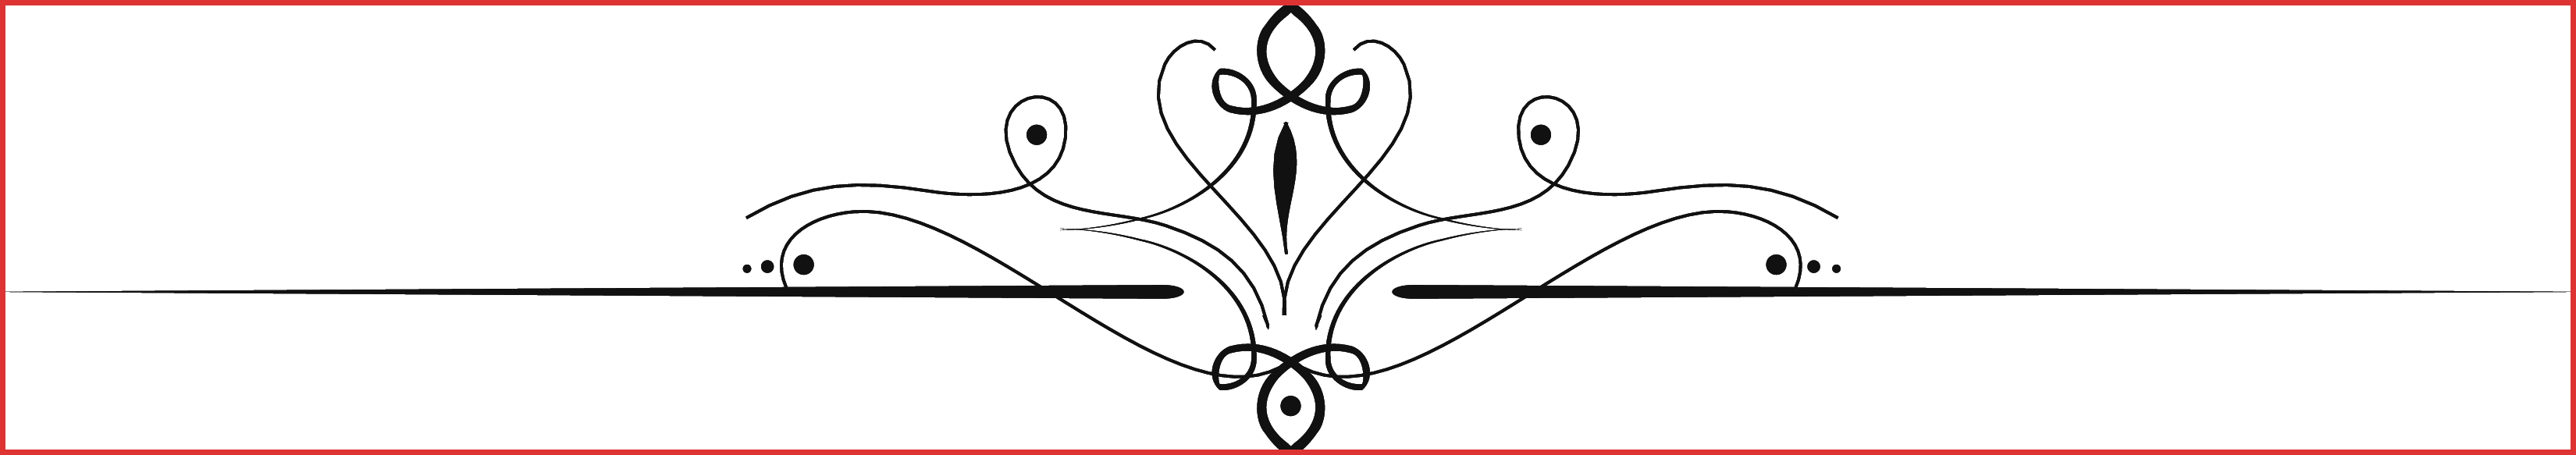 Fancy divider line png. Images of decorative spacehero